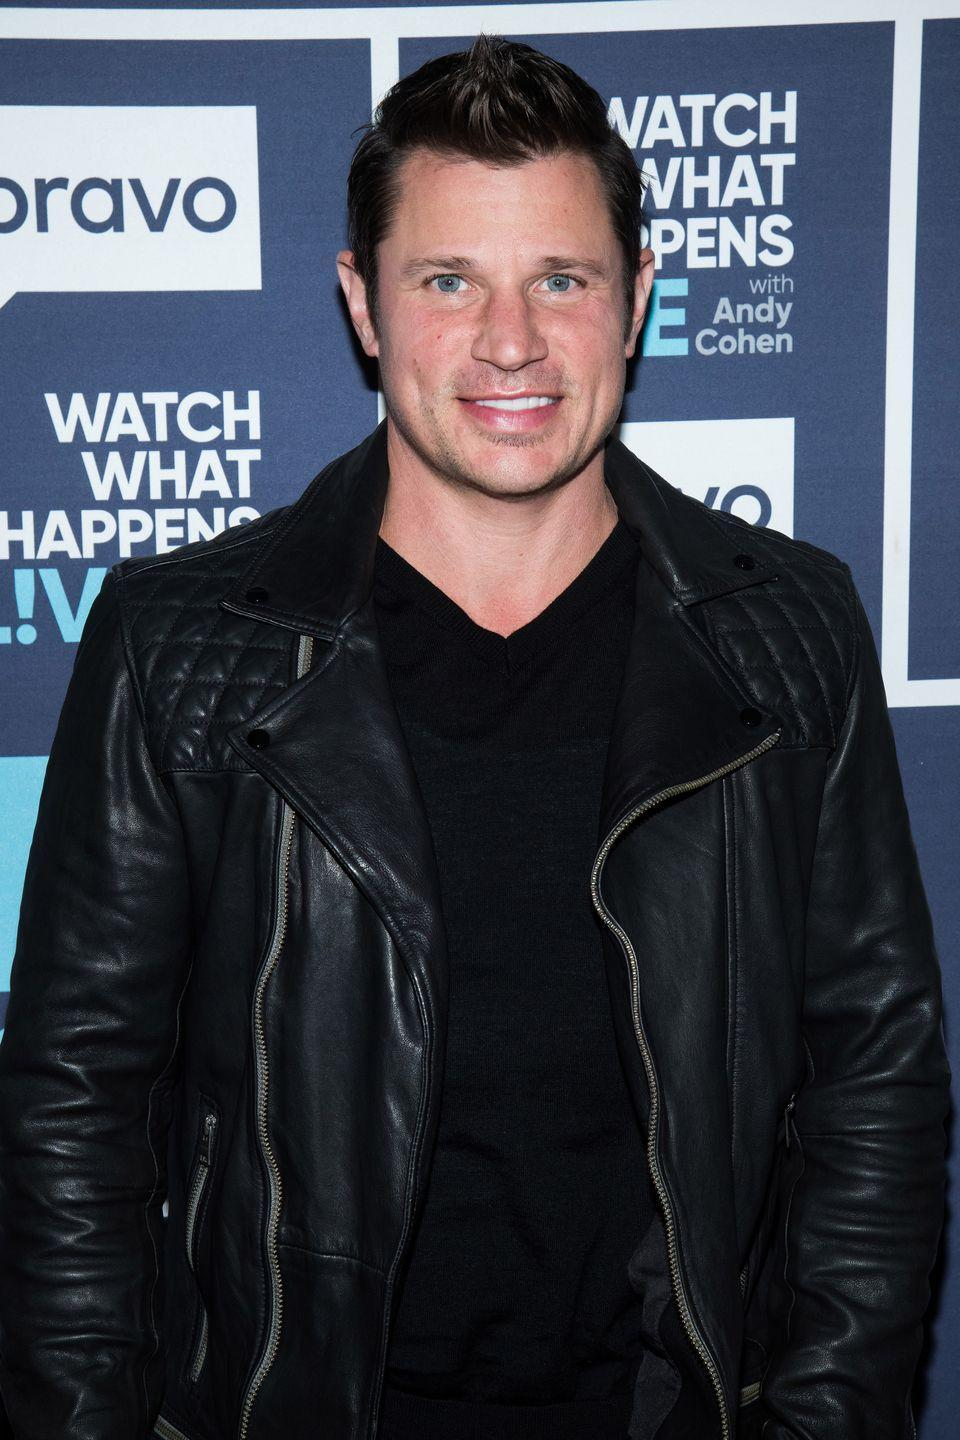 <p>After taking a brief musical hiatus, Lachey has reunited with his former bandmates of 98 Degrees. The 46-year-old also hosts the Netflix reality show <em>Love Is Blind</em>, alongside his wife Vanessa Minnillo. </p>